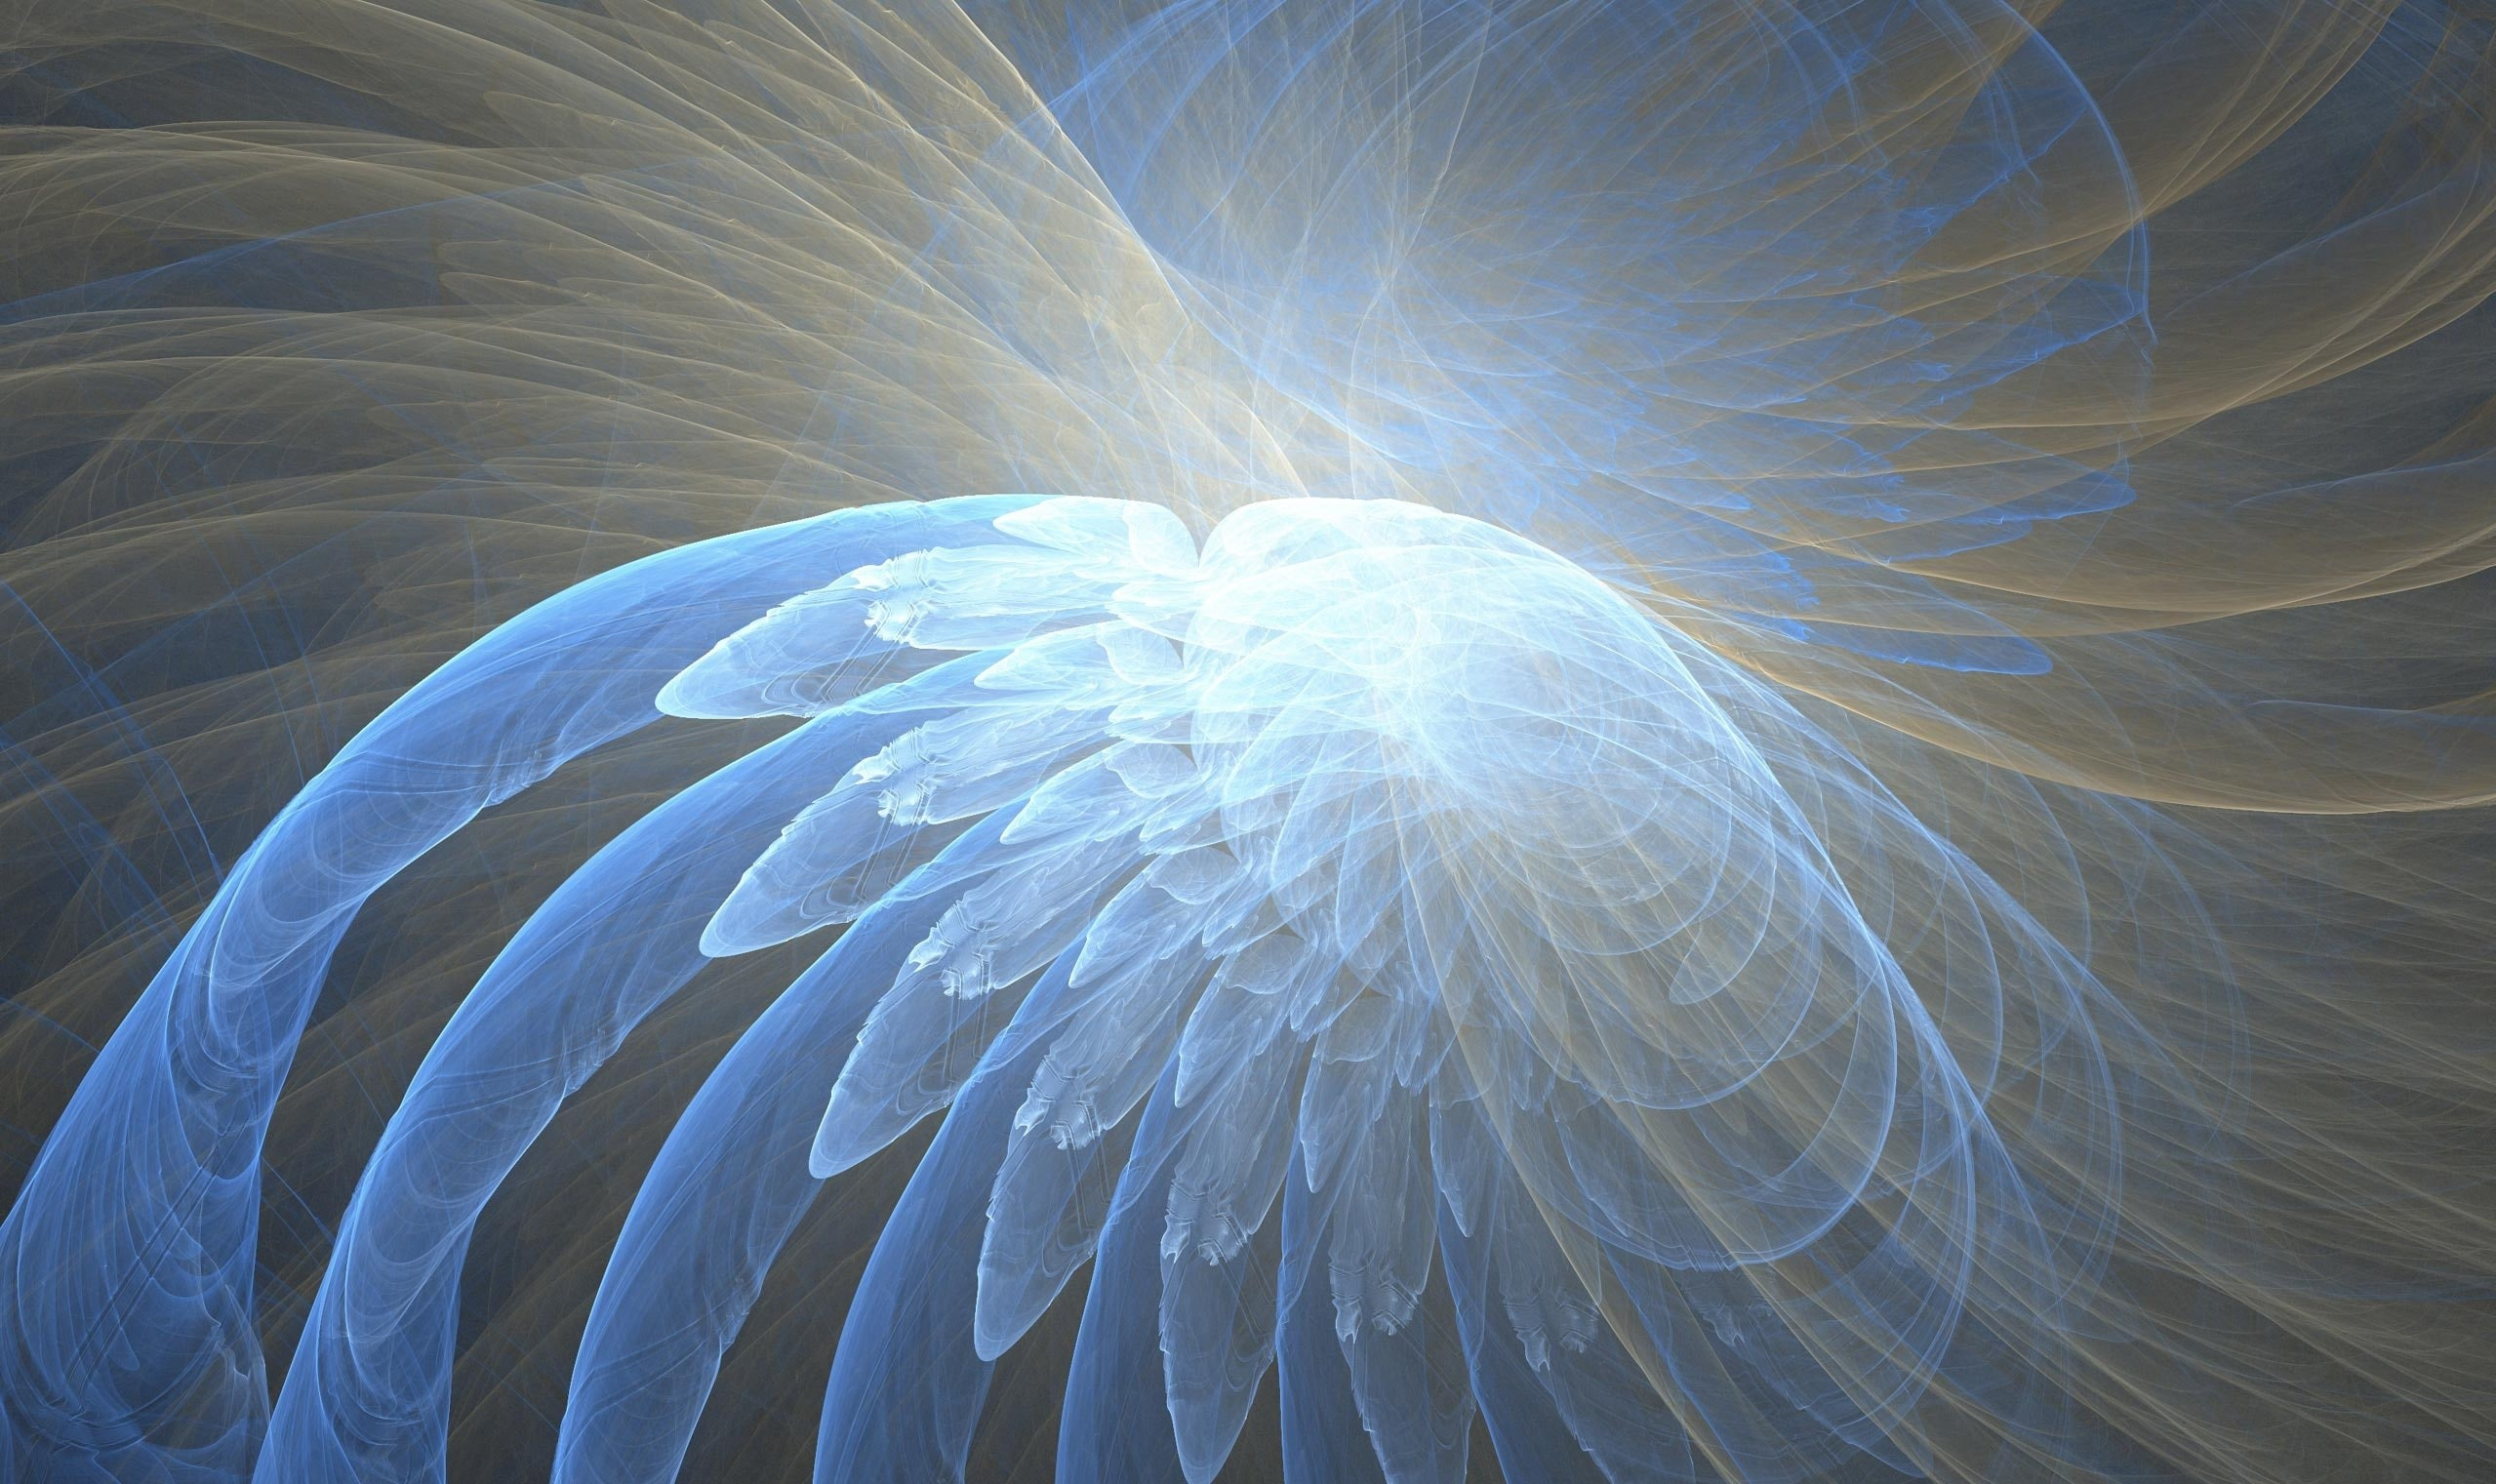 Ultra HD Wallpaper Background – Blue Angel Wing Fractal DOWNLOAD This UHD  4K Wallpaper for FREE